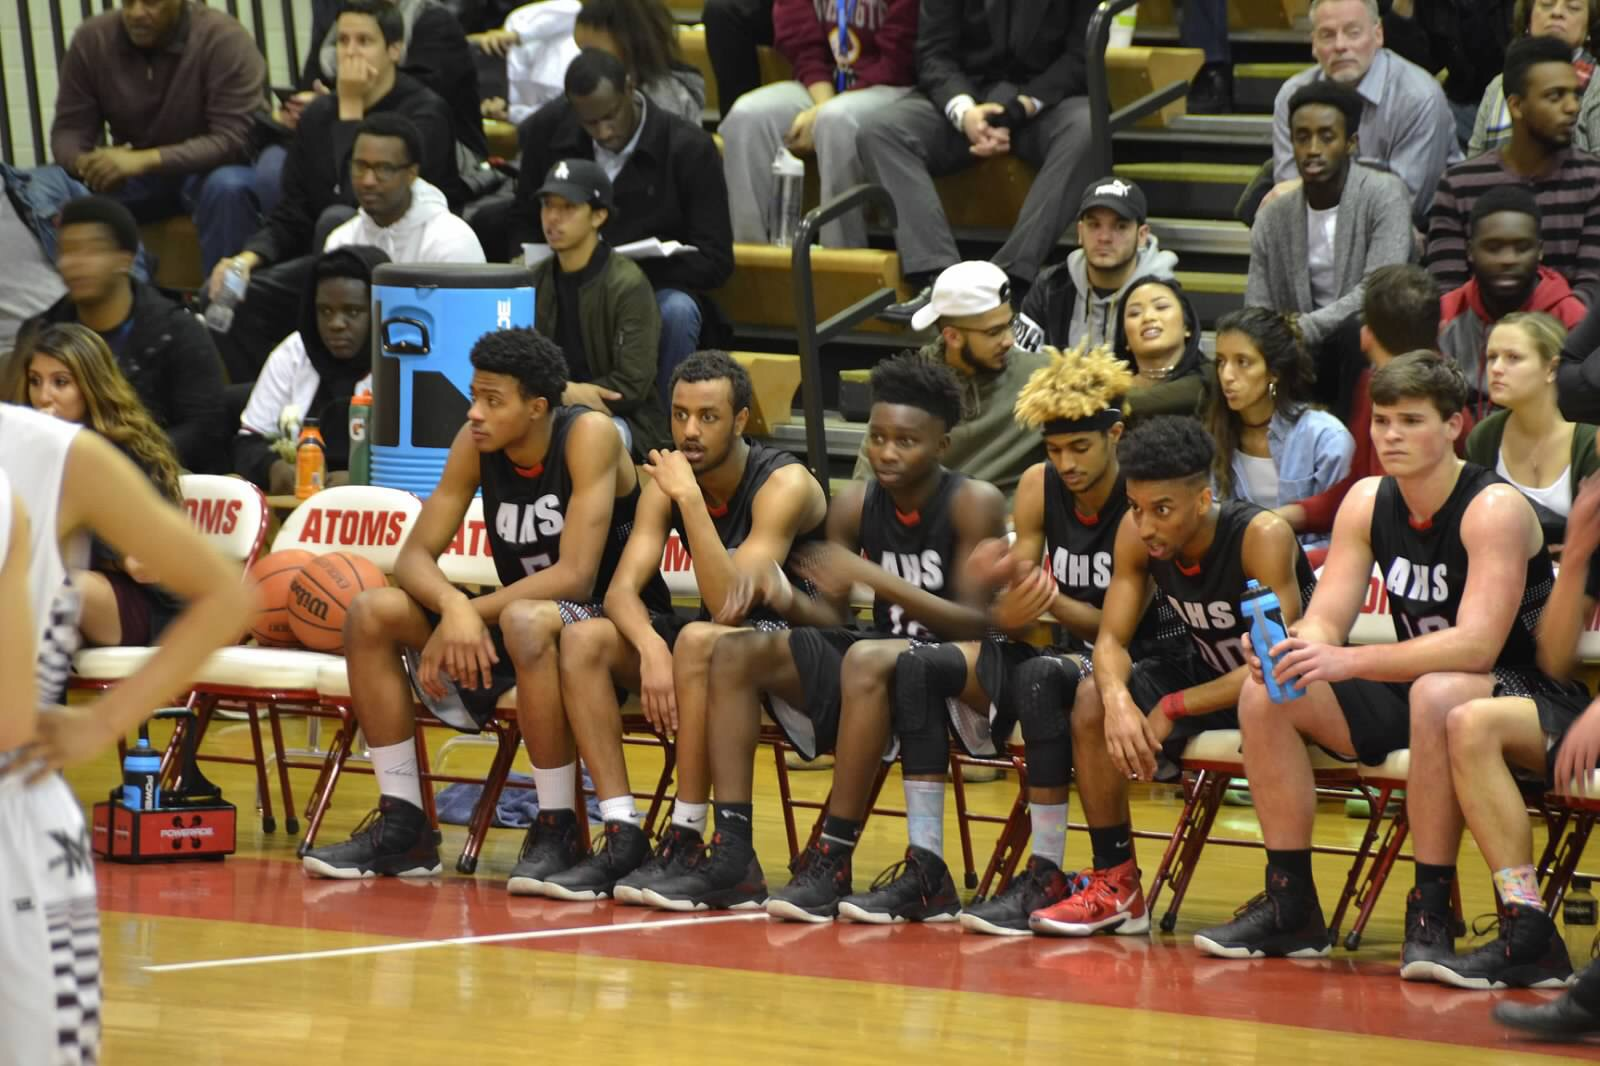 The Atoms' bench looks on during the game against Mount Vernon on Feb. 10.